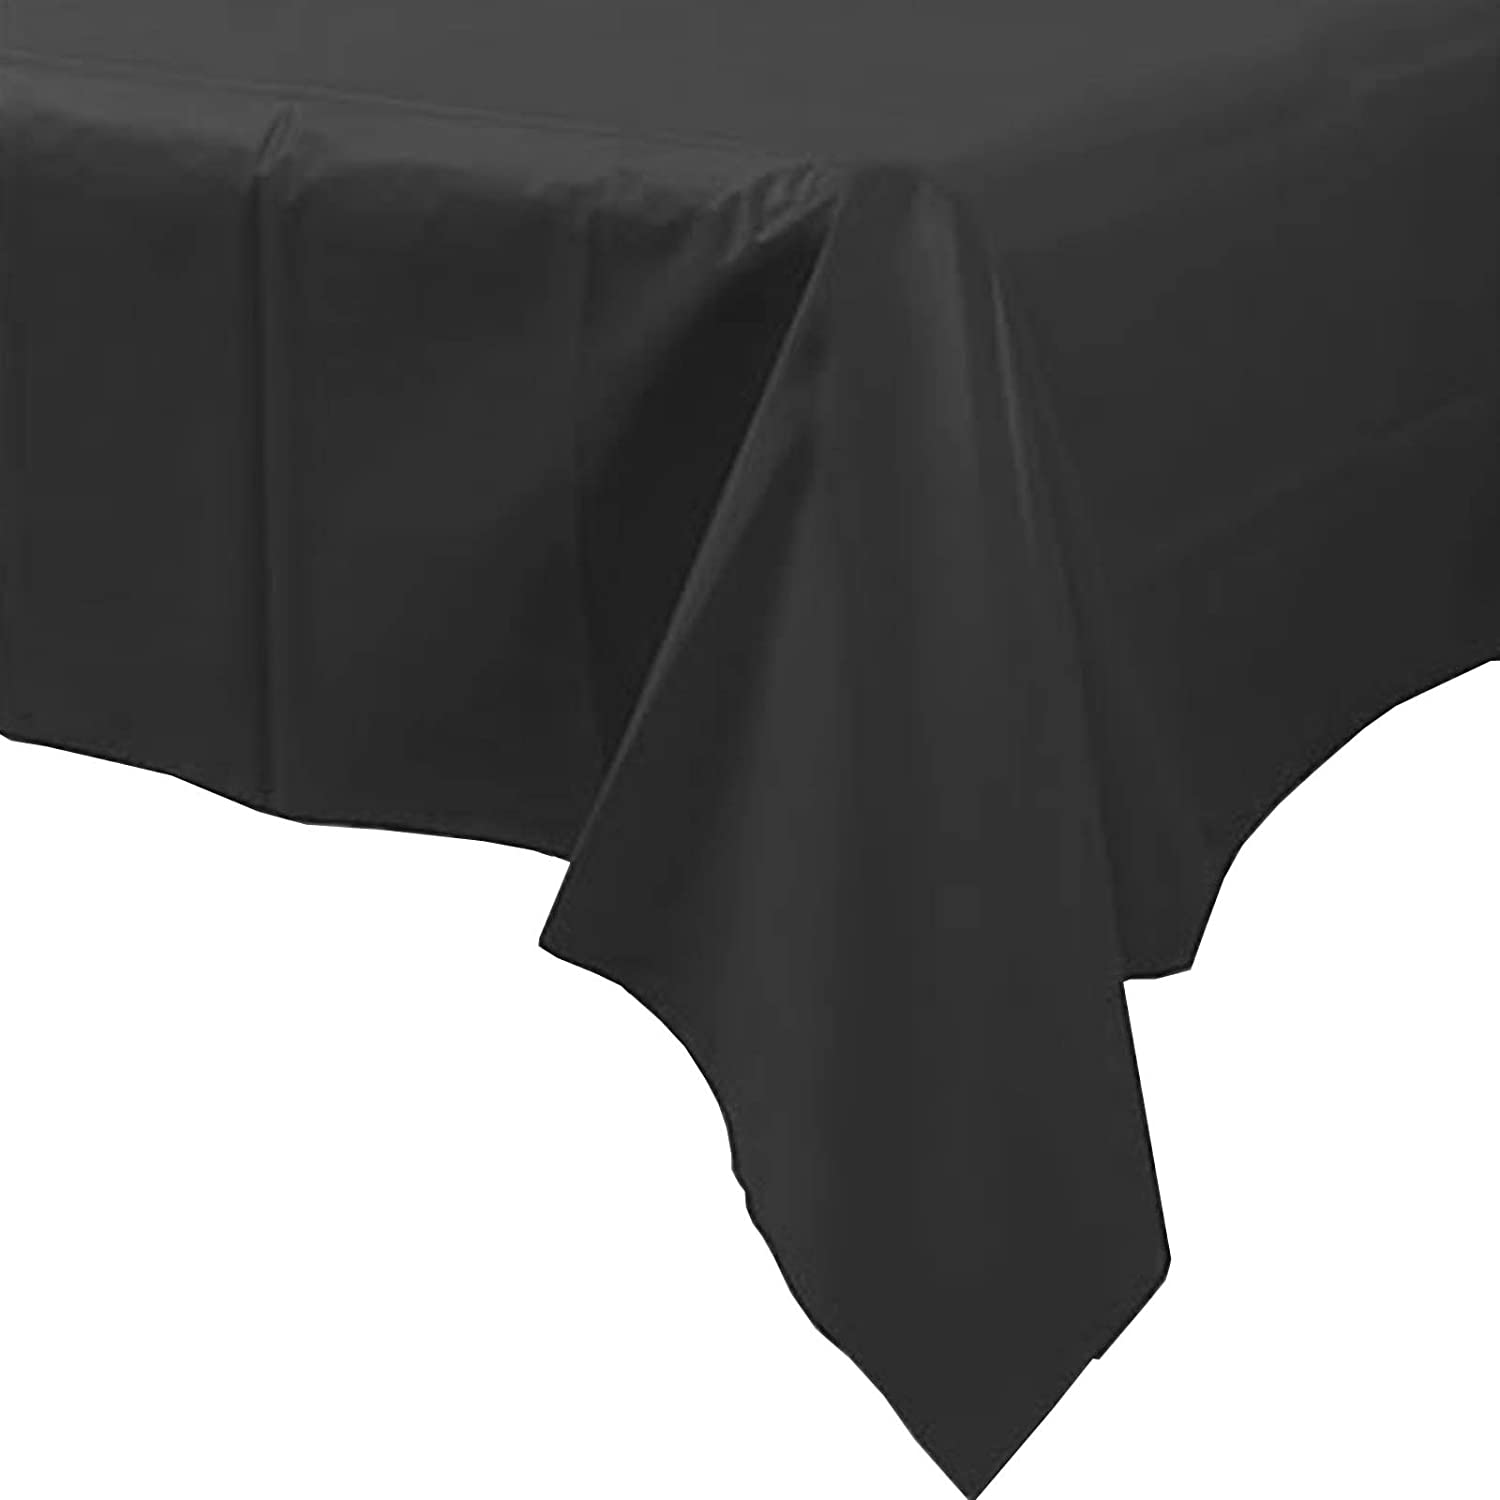 3 X Black Plastic Party Table Cover 54x108 Inch Amscan